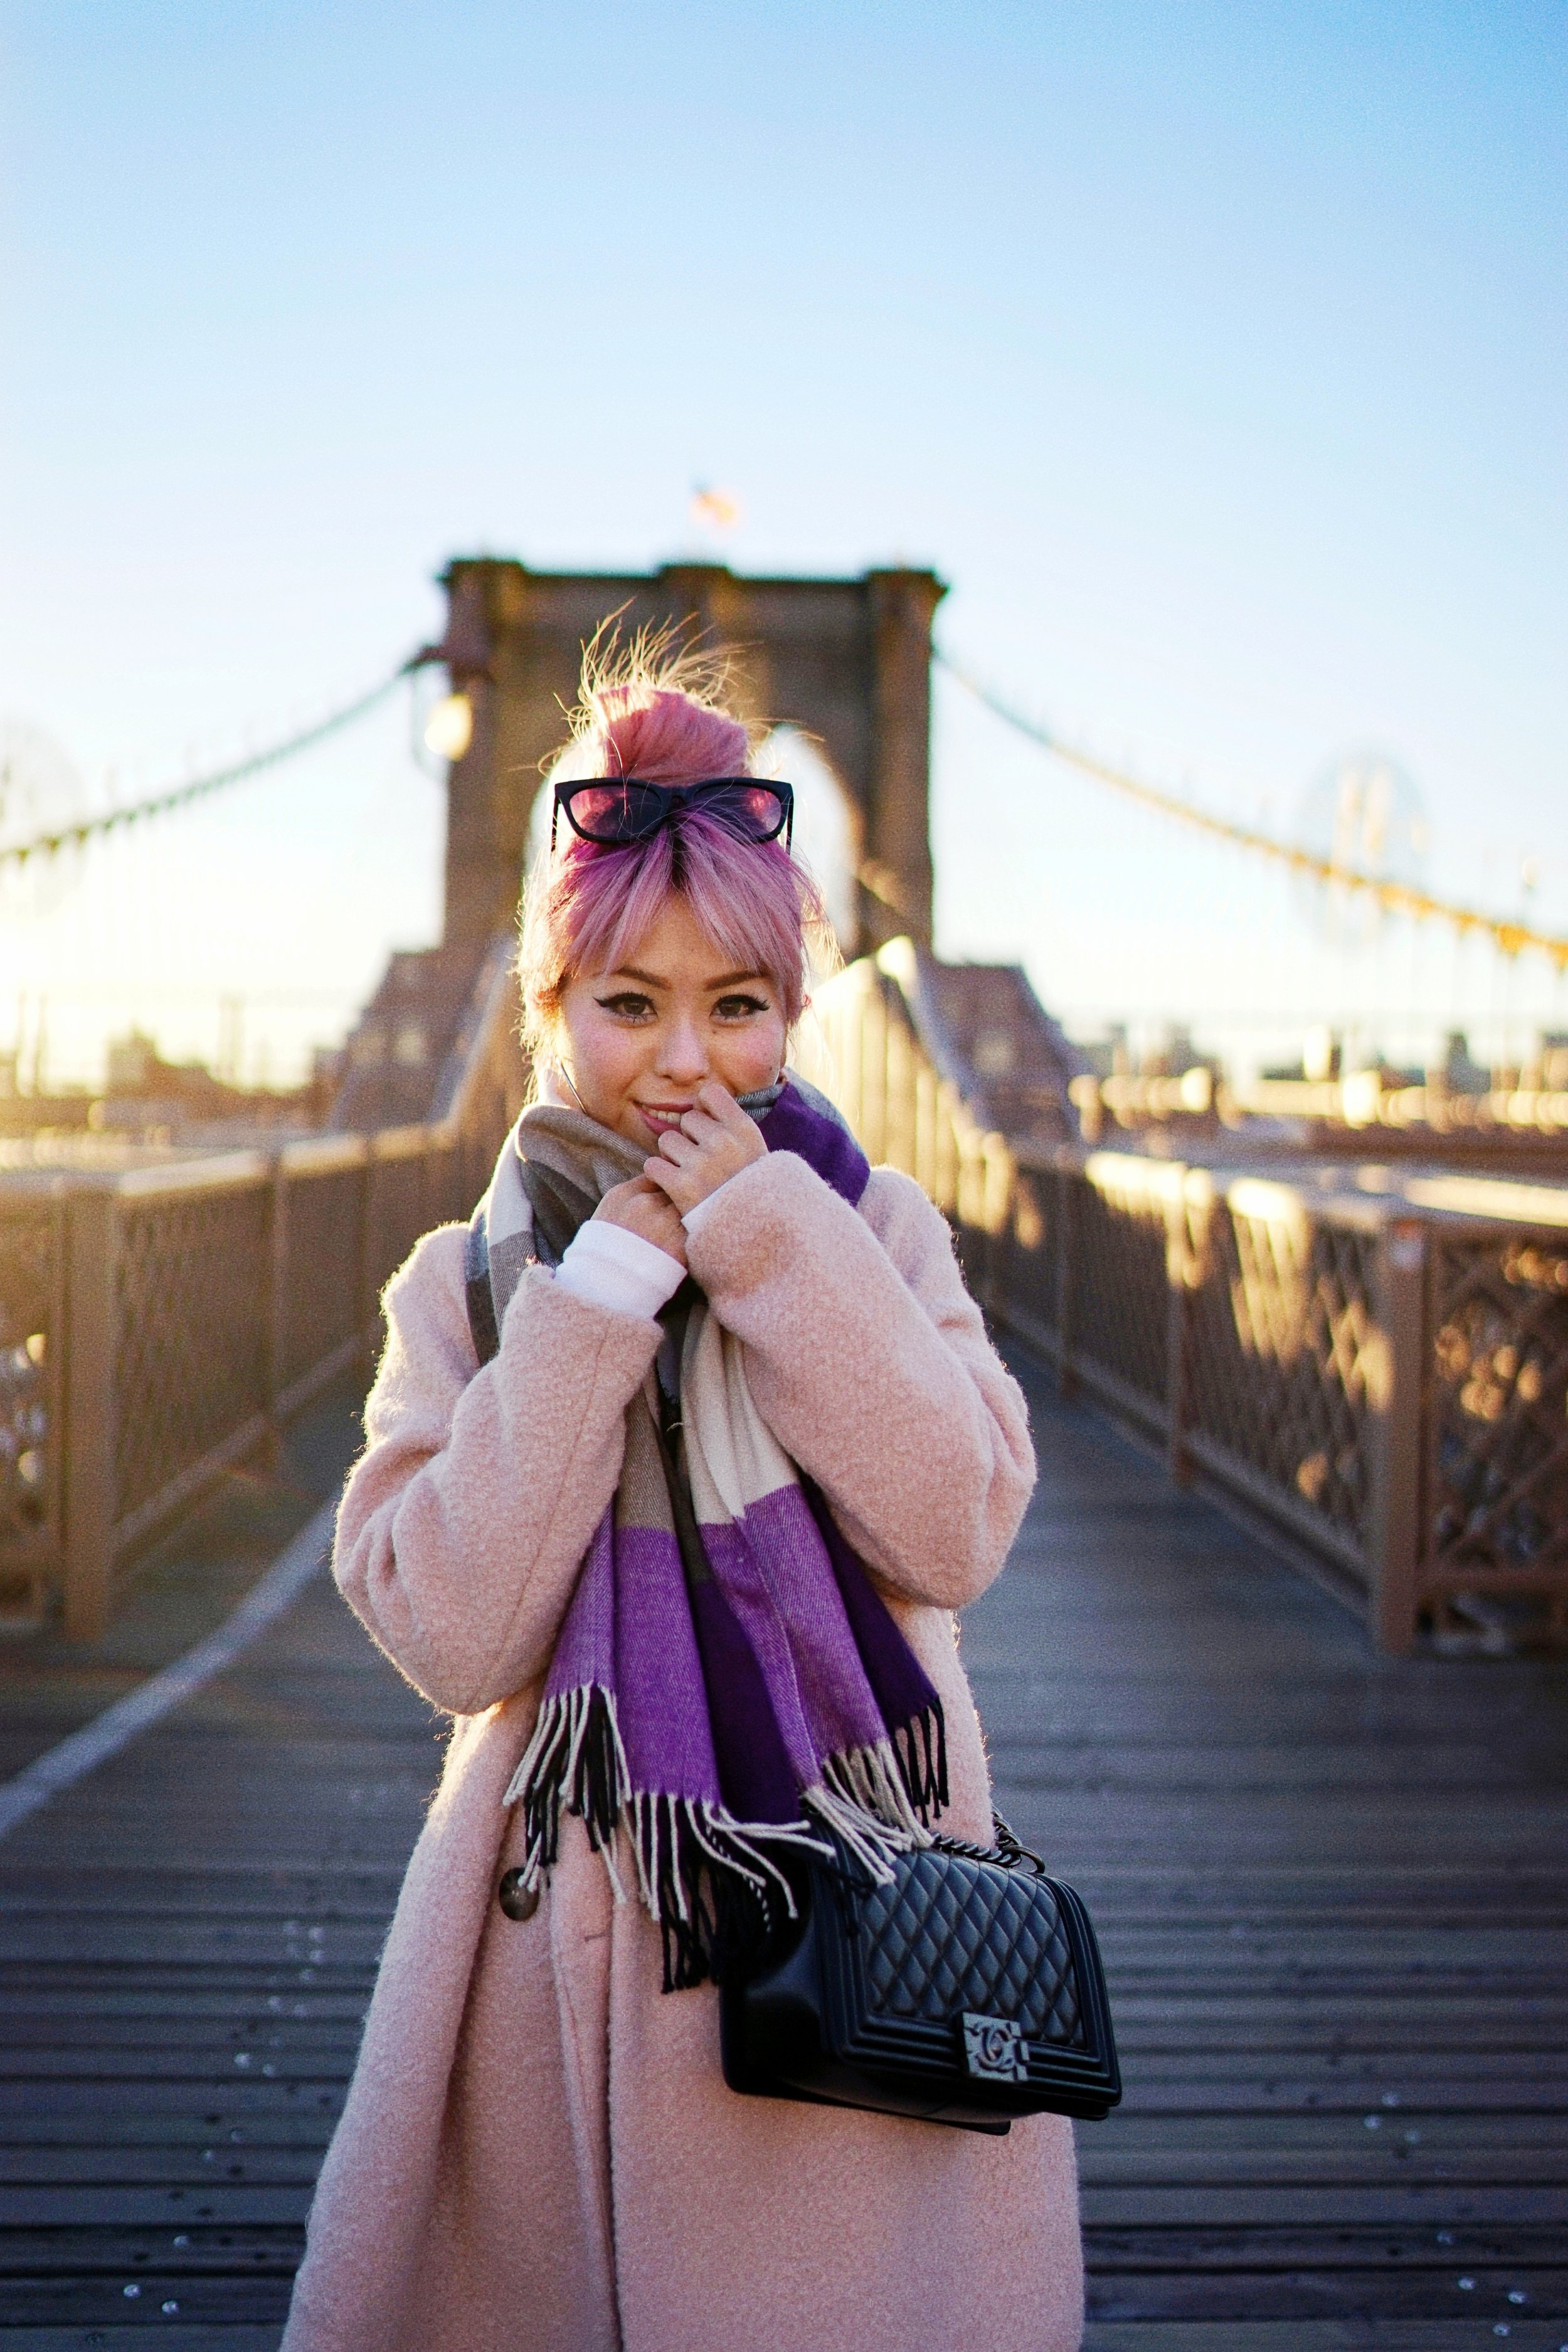 GAP Scarf-Zara pink coat-MOUSSY- frayed hem jeans- CHANEL Lambskin Quilted Medium Boy Flap Black-Adidas Superstar Shoes-Urban Outfitters Sunglasses-Aika's Love Closet-Sealtle fashion style blogger from japan-pink hair-brooklyn bridge-new york-city 6